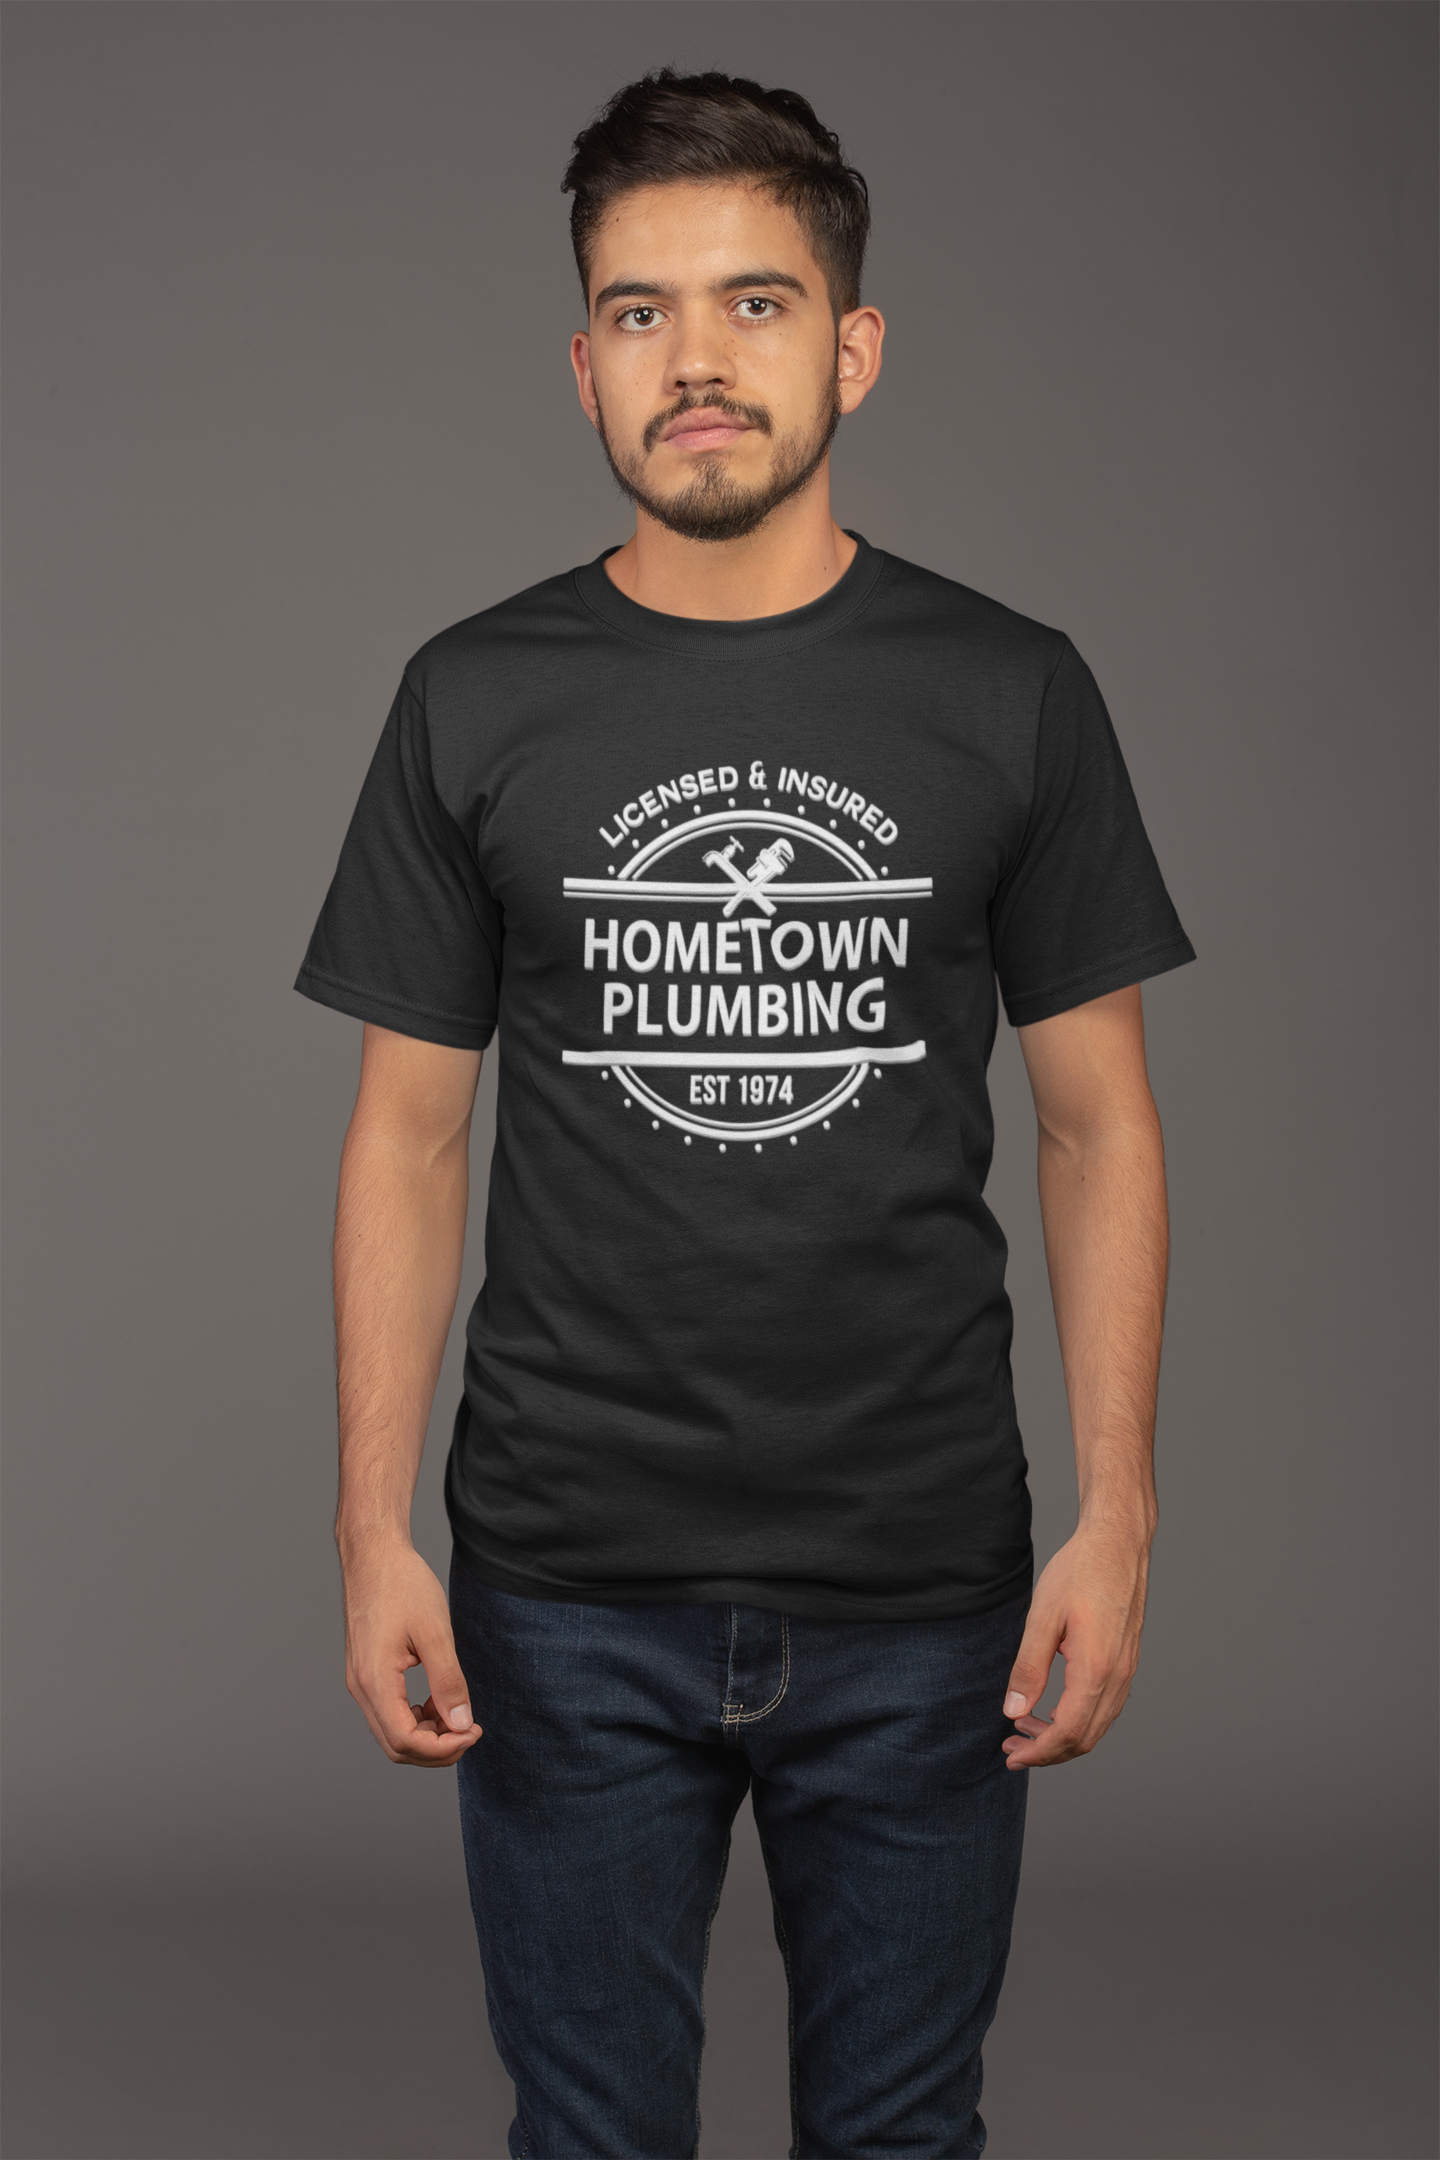 mockup-featuring-a-young-man-with-beard-wearing-a-t-shirt-and-jeans-21101.png